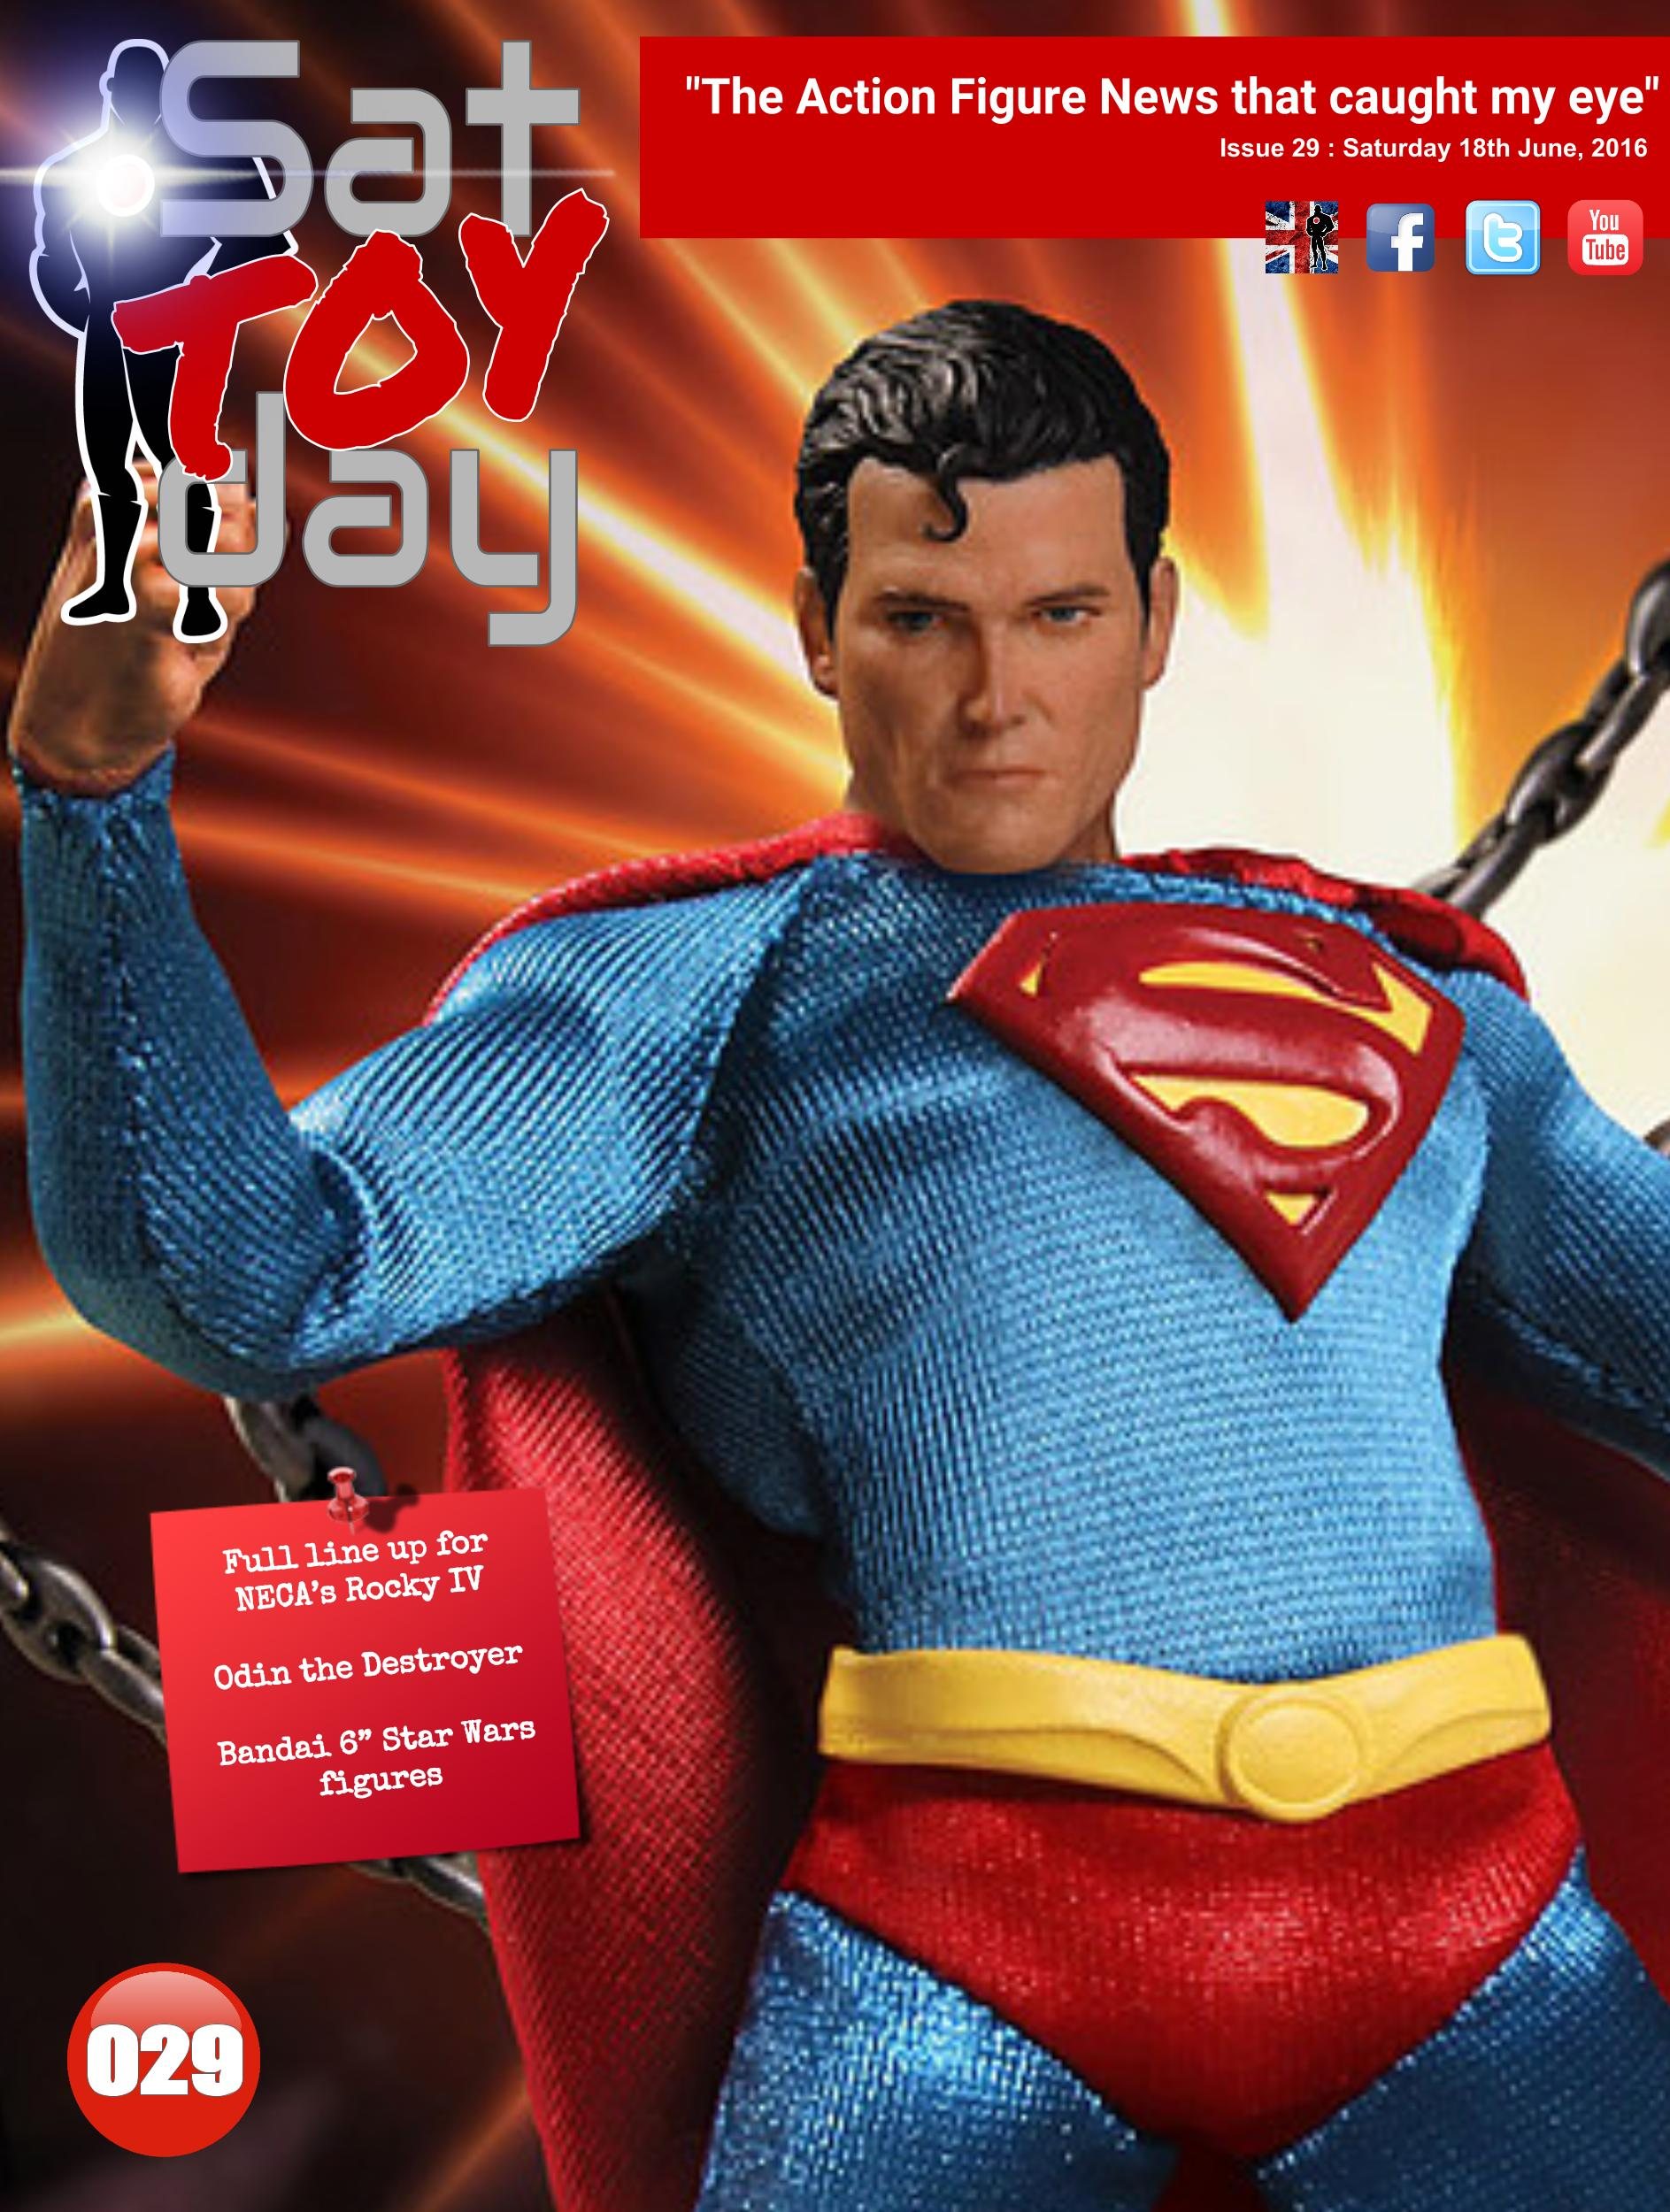 029 Action Figure Sat-TOY-day News, 18th June 2016